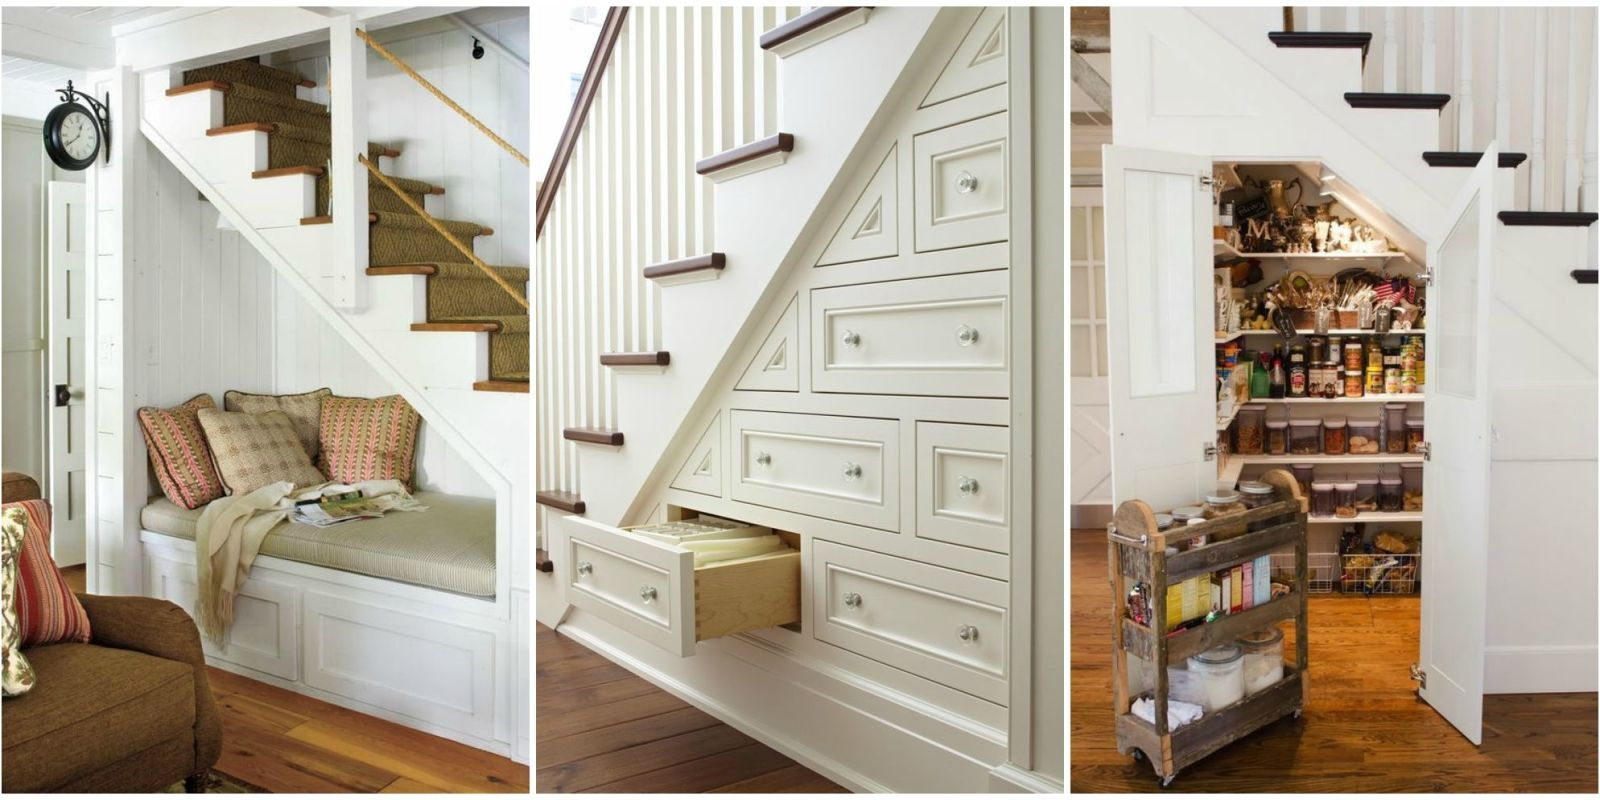 Exceptionnel 15 Genius Under Stairs Storage Ideas   What To Do With Empty Space Under  Stairs